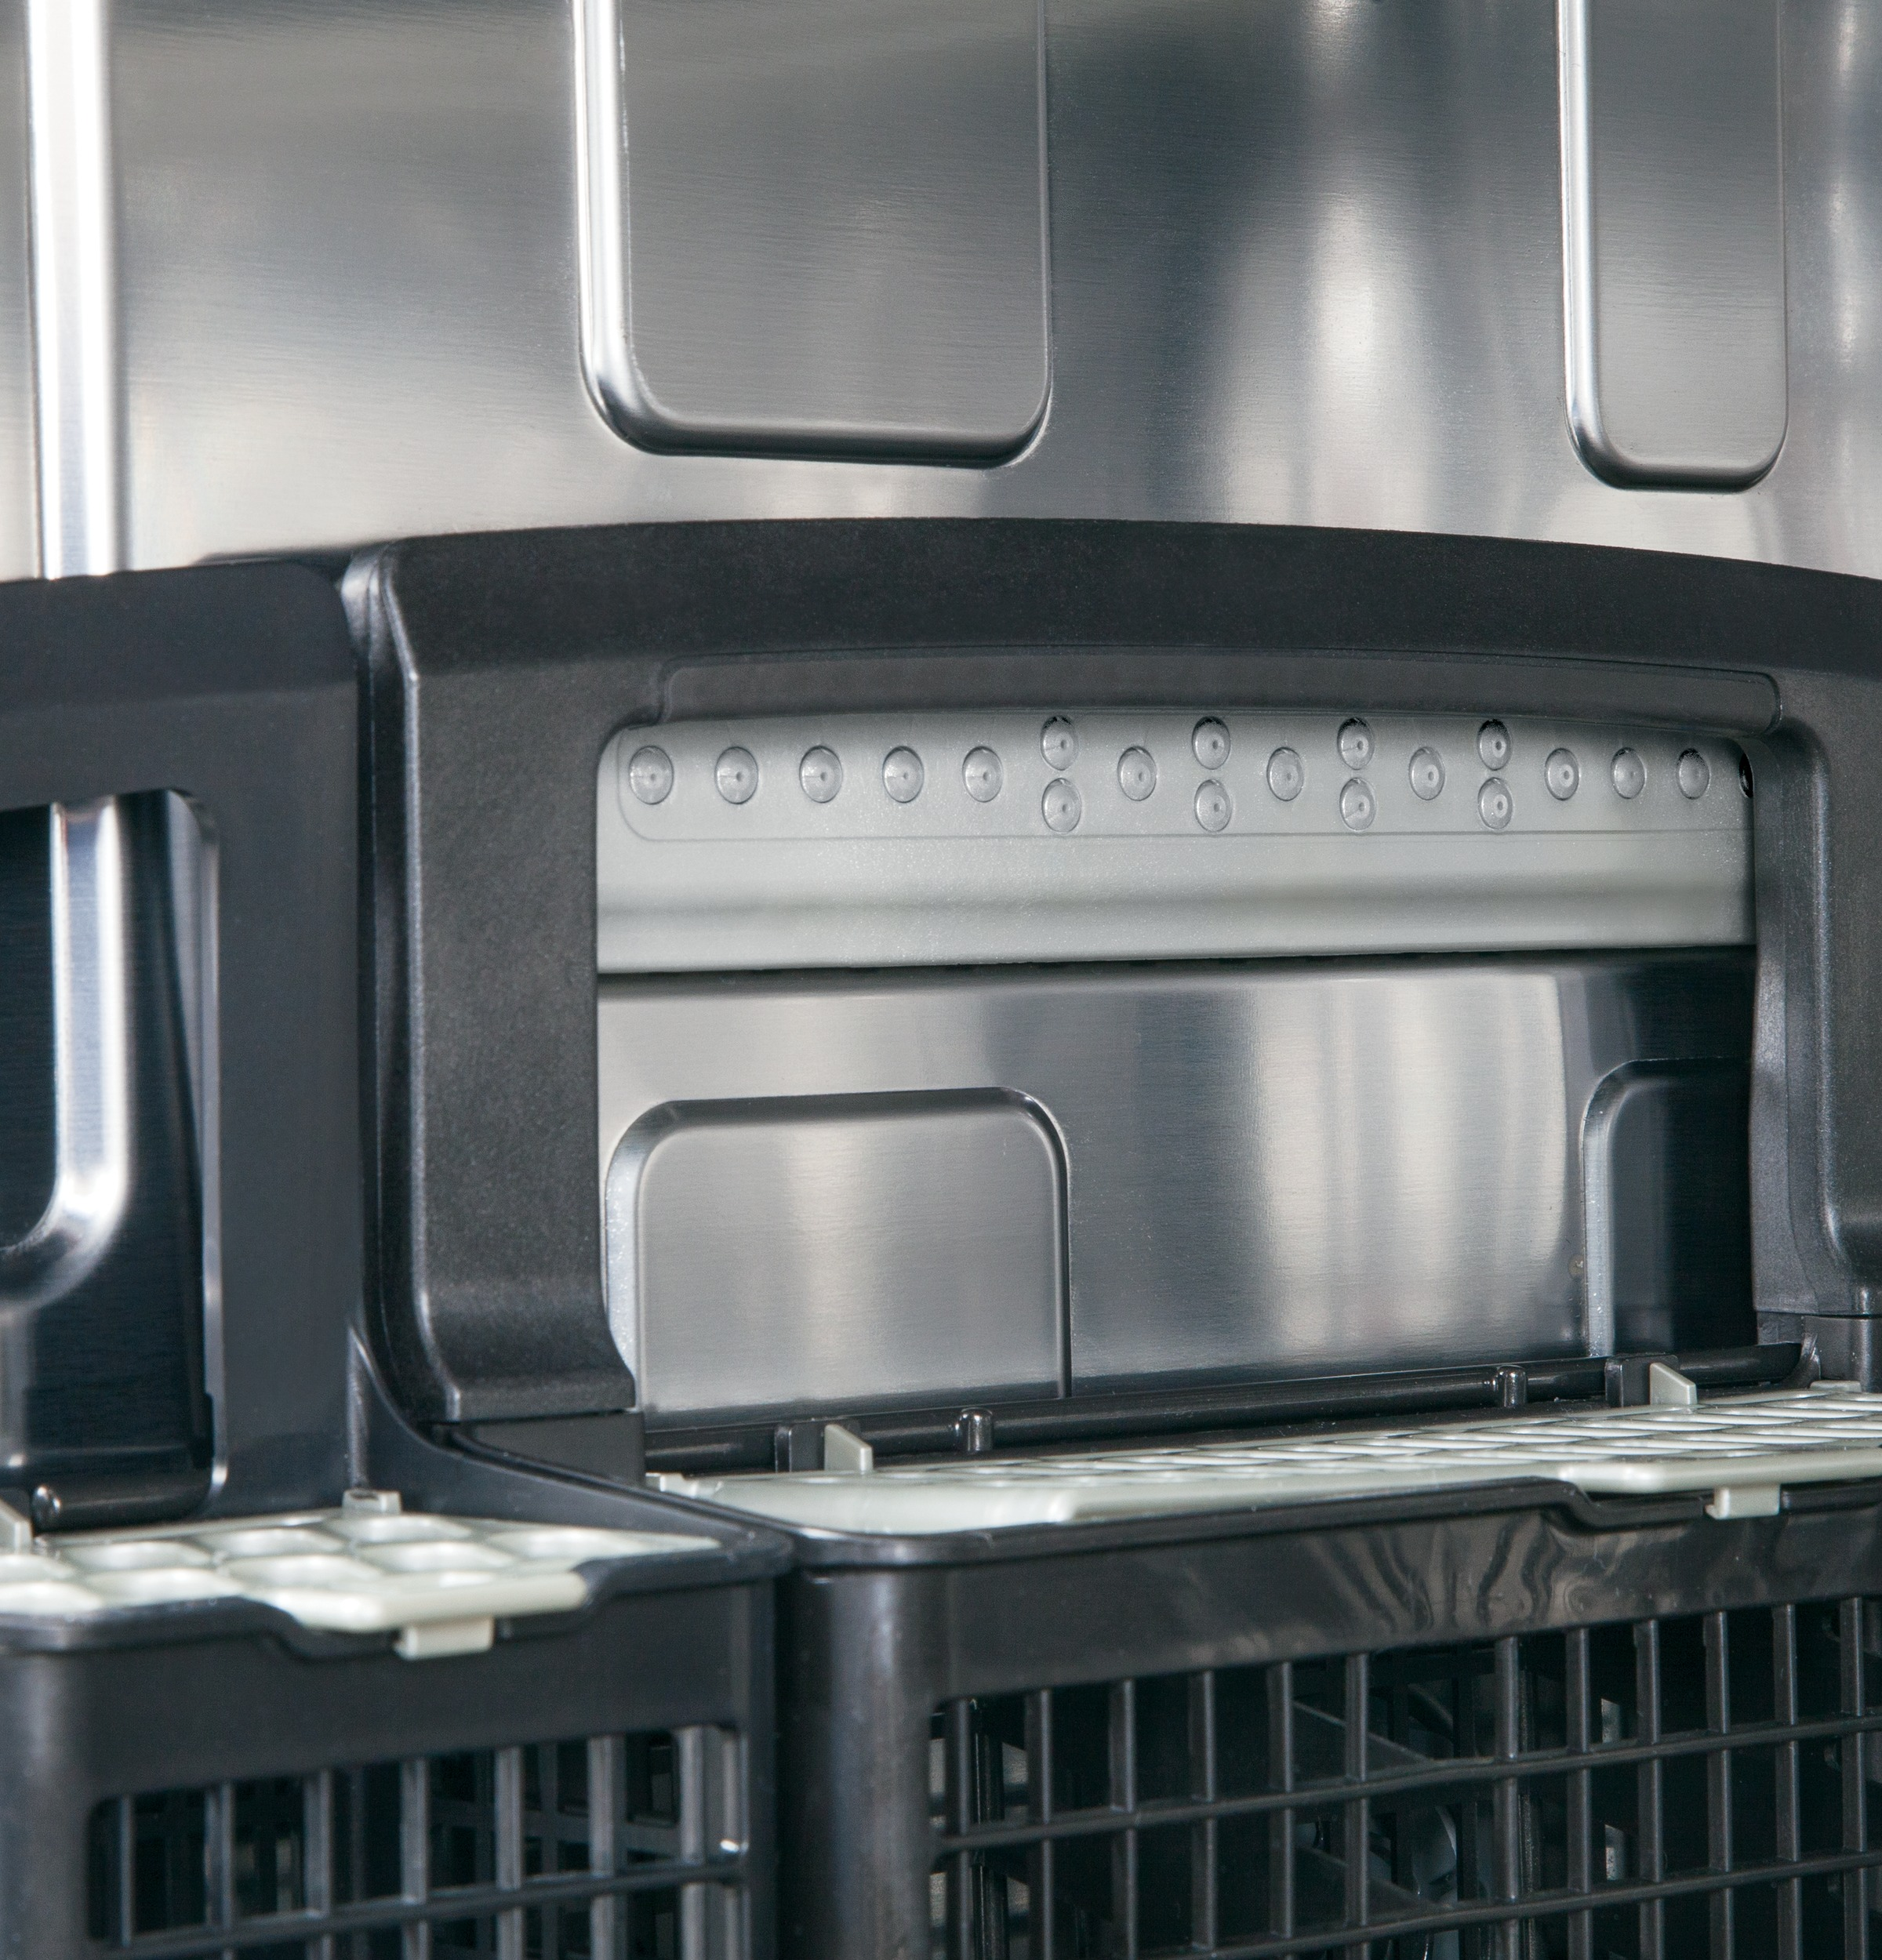 Model: PDT825SGJWW | GE Profile GE Profile™ Stainless Steel Interior Dishwasher with Hidden Controls